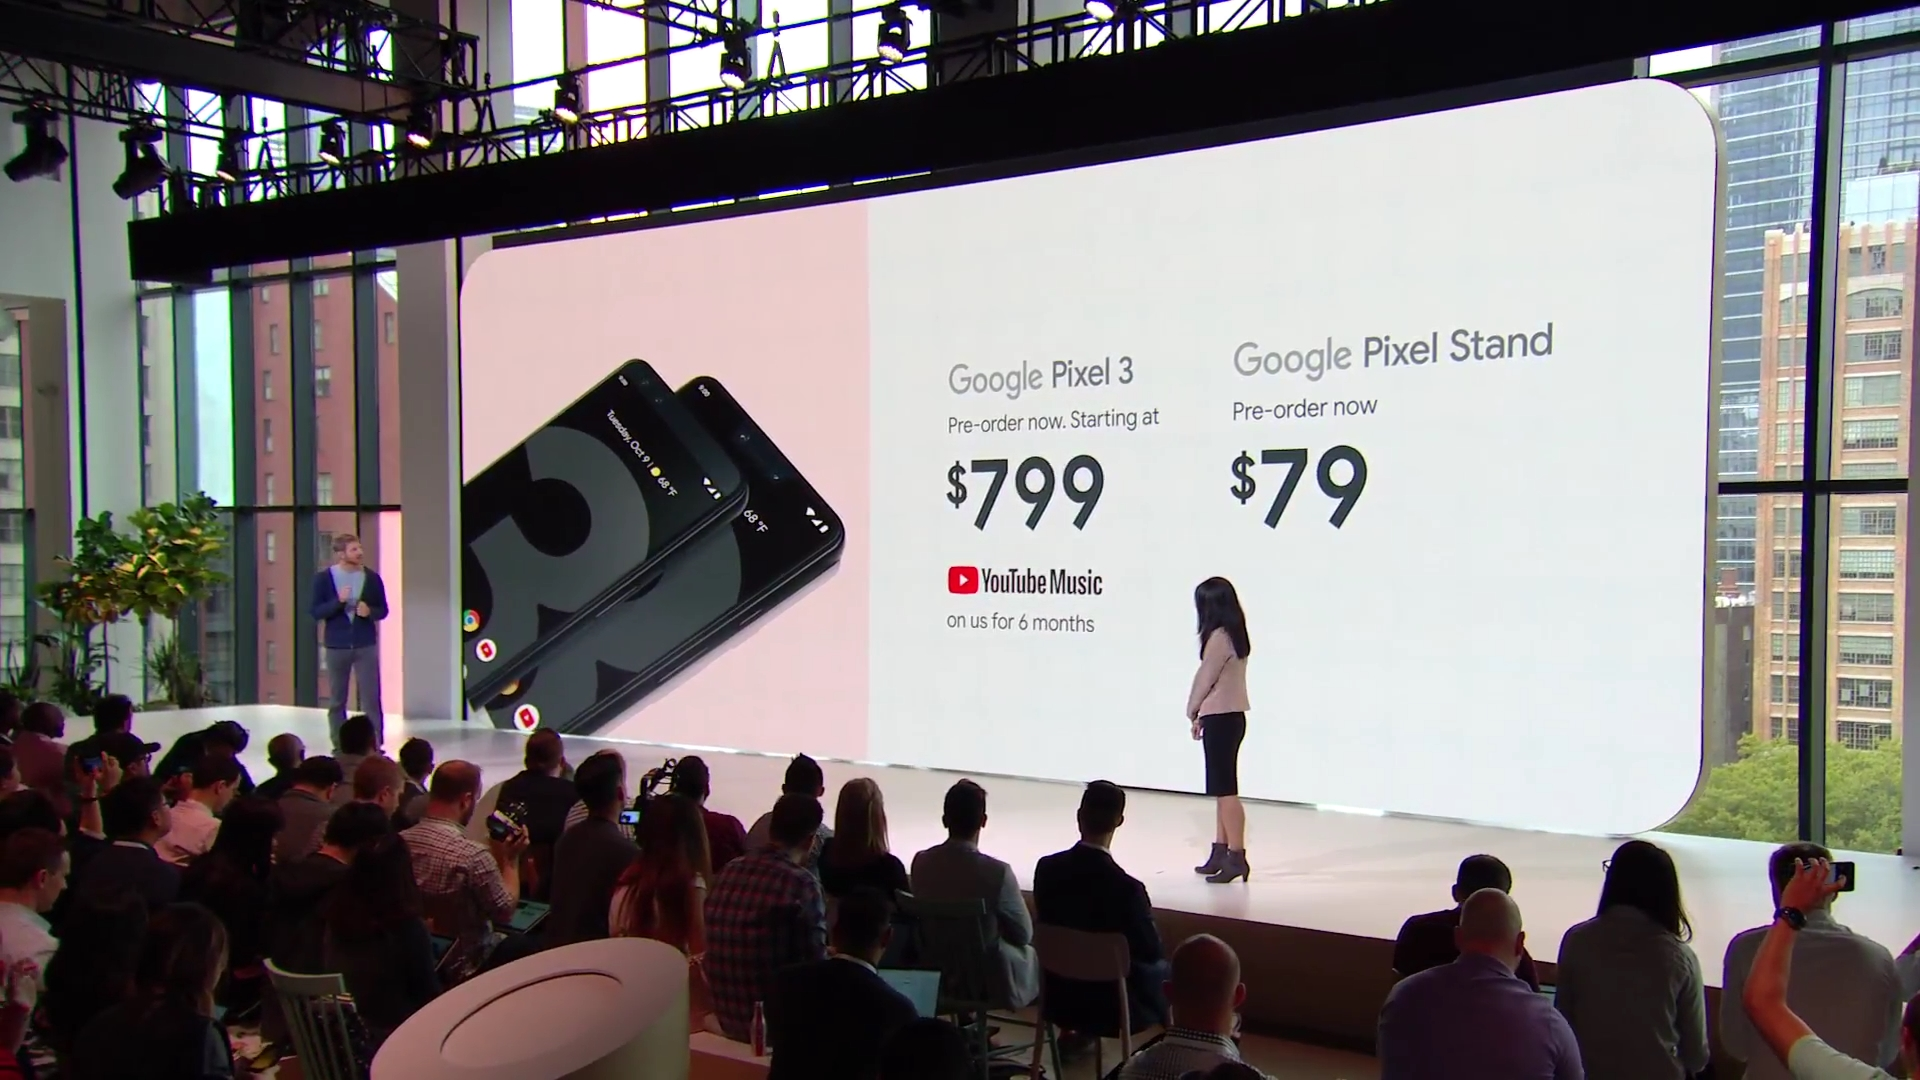 Photo of the price reveal at the presentation on the Google Pixel 3